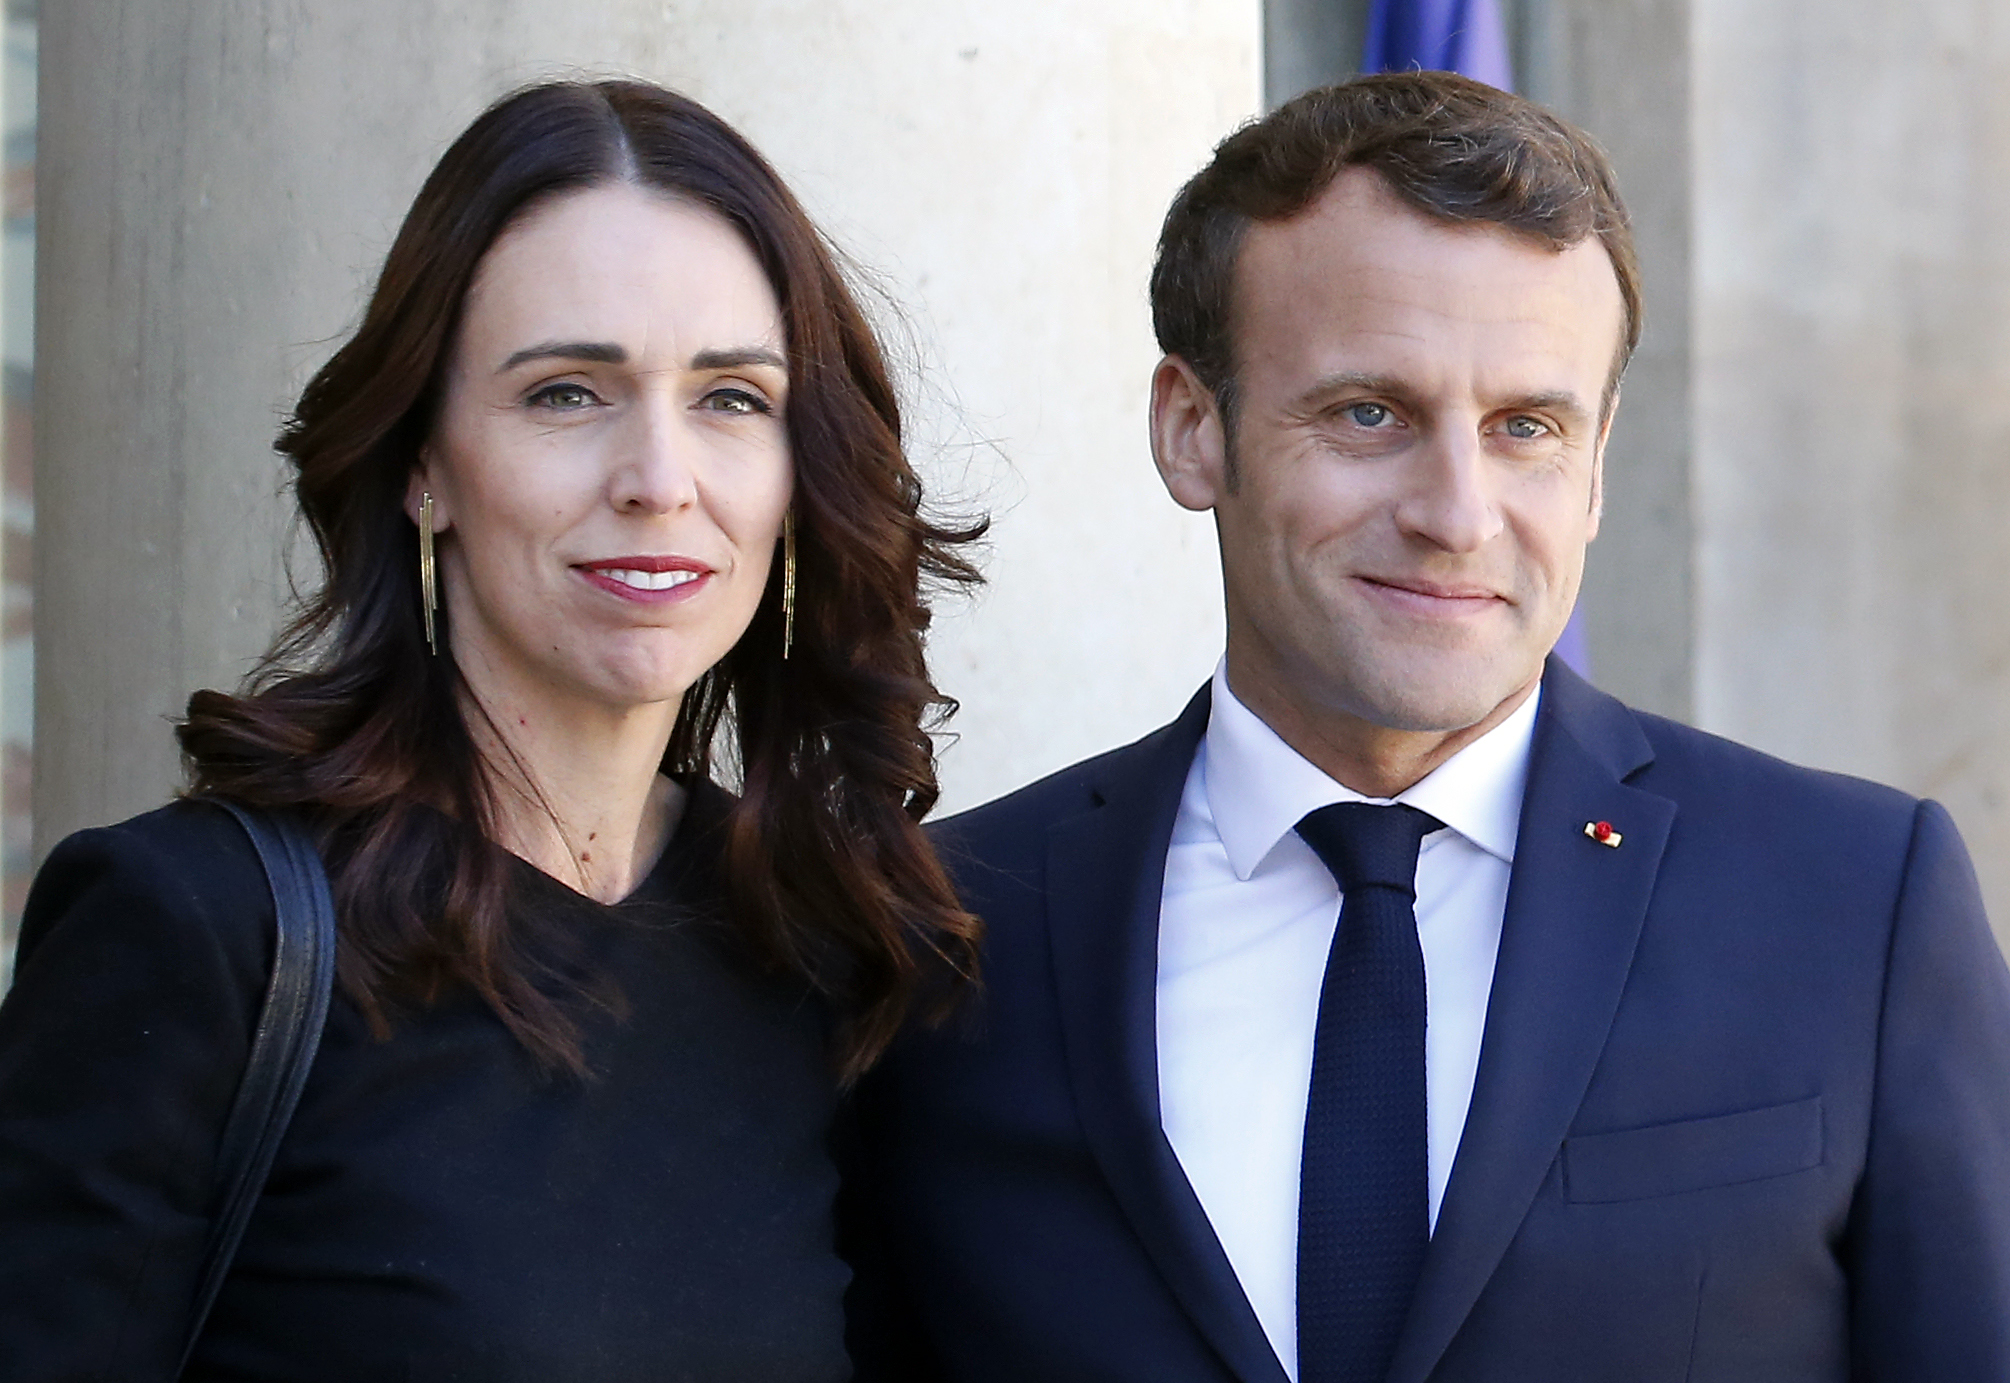 French President Emmanuel Macron welcomes New Zealand Prime Minister Jacinda Ardern prior to their meeting at Elysee Palace on May 15, 2019 in Paris, France.